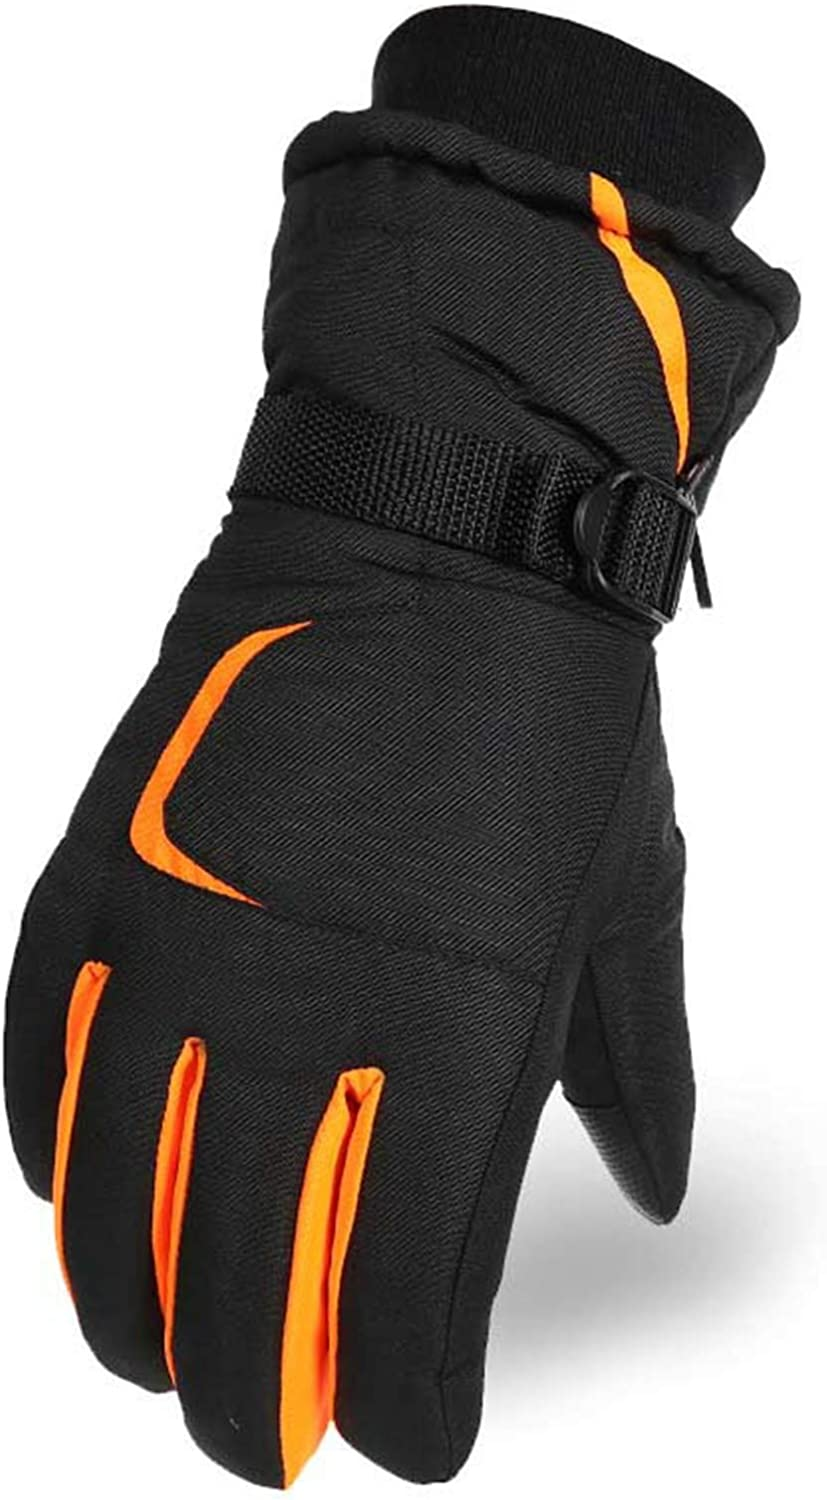 Aokarry Gloves Cycling Motocycle Gloves Microfiber Winter Gloves Warm Touch Screen Motocycle